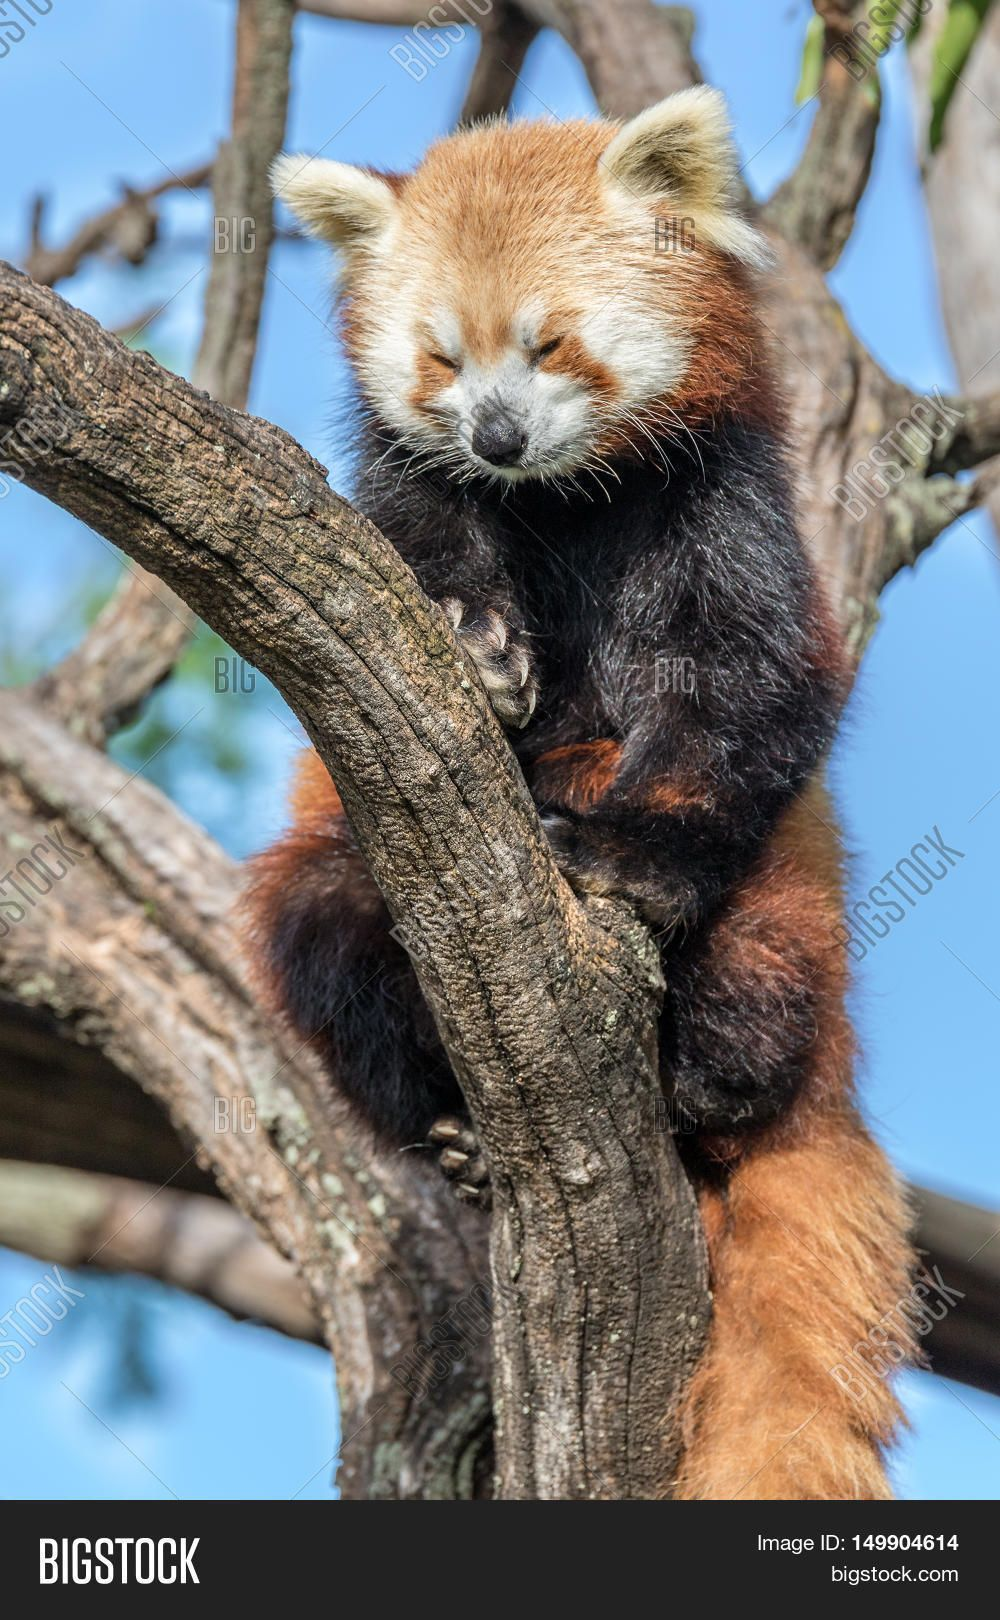 A red panda relaxing in a tree on a nice sunny day.